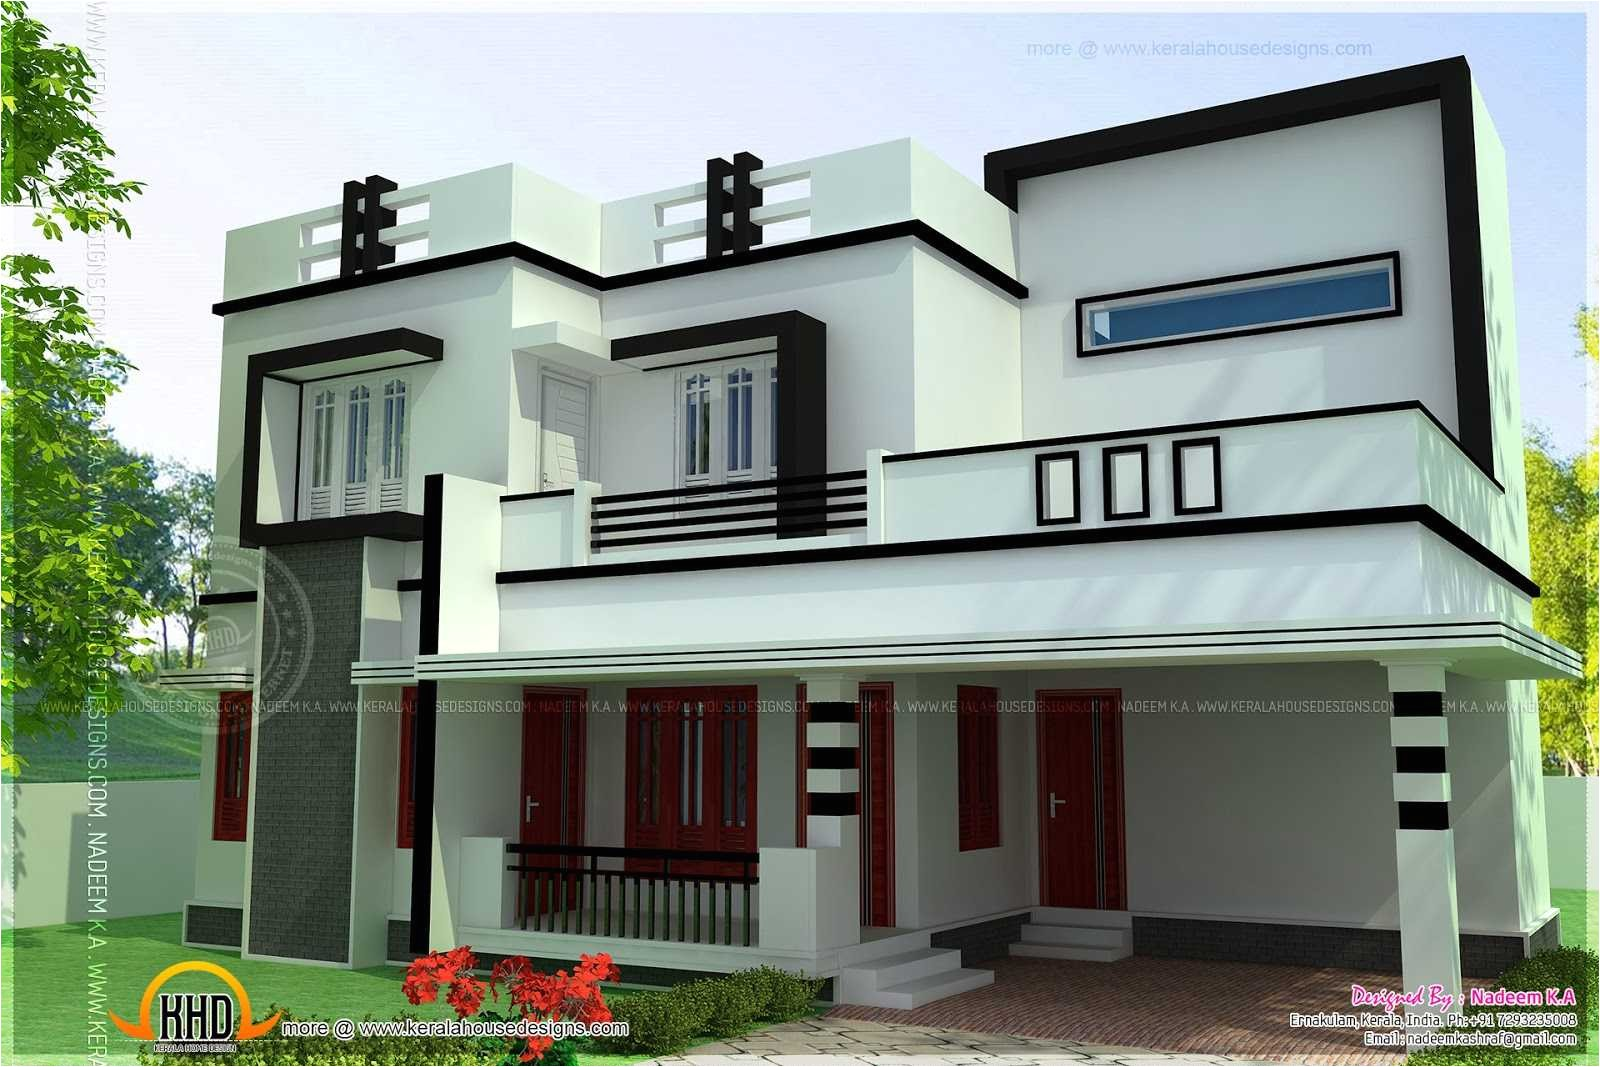 4 bedroom modern house design plans designs 2018 including incredible flat roof kerala home floor pictures